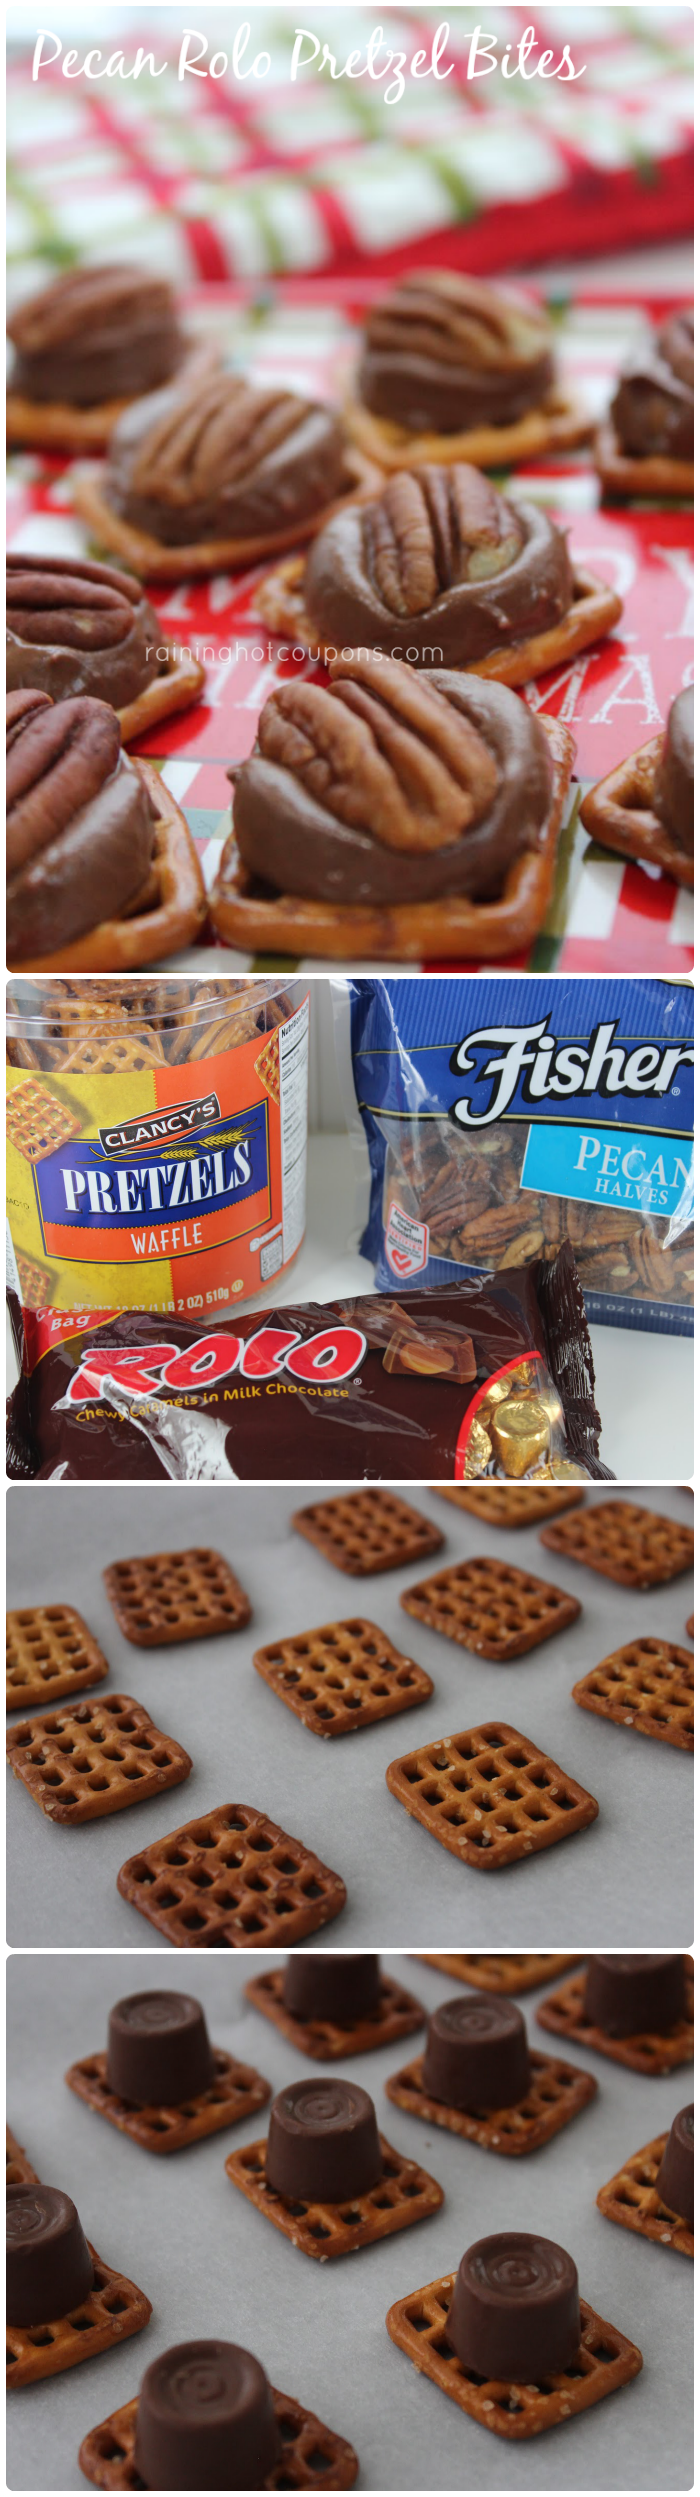 pecan rolo collage